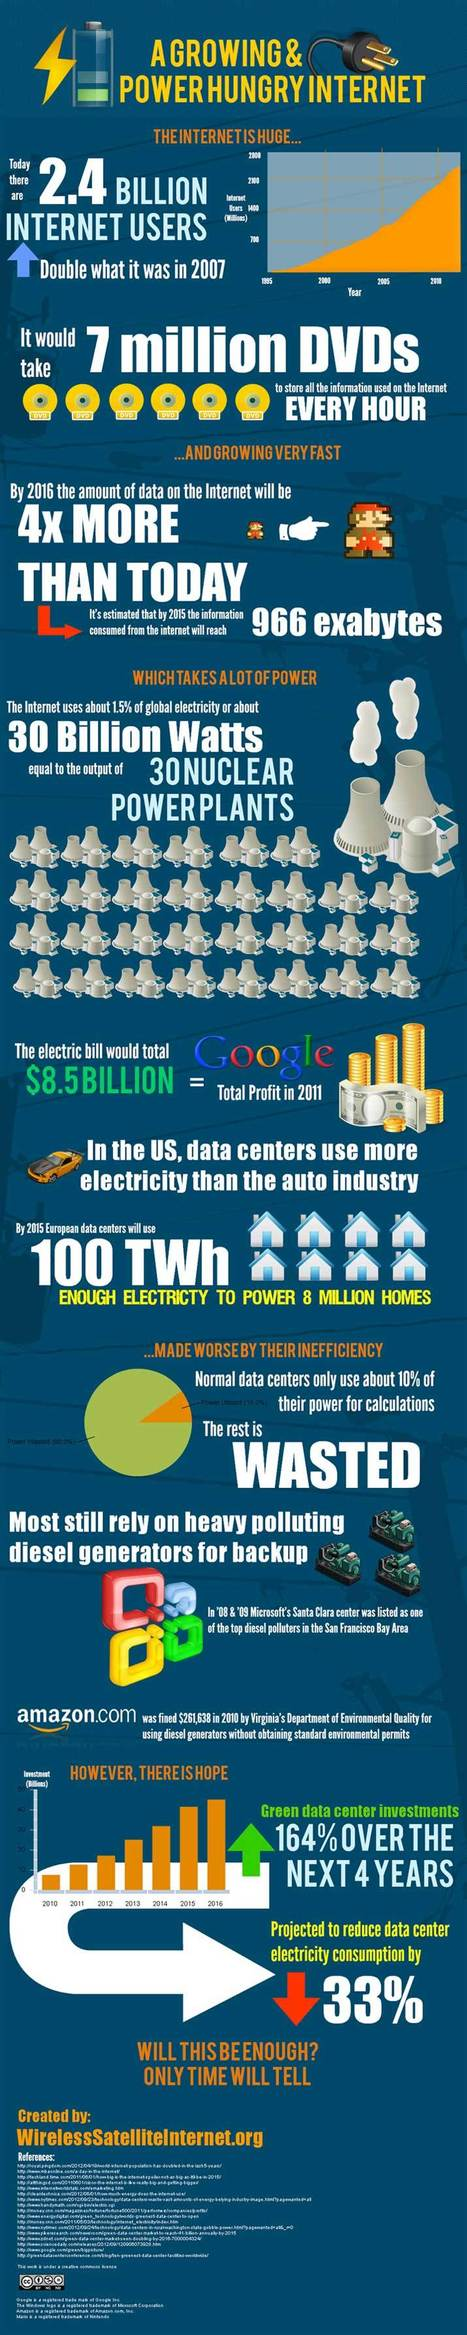 How Much Is the Internet's Electric Bill? [INFOGRAPHIC] | No(n)sense | Scoop.it